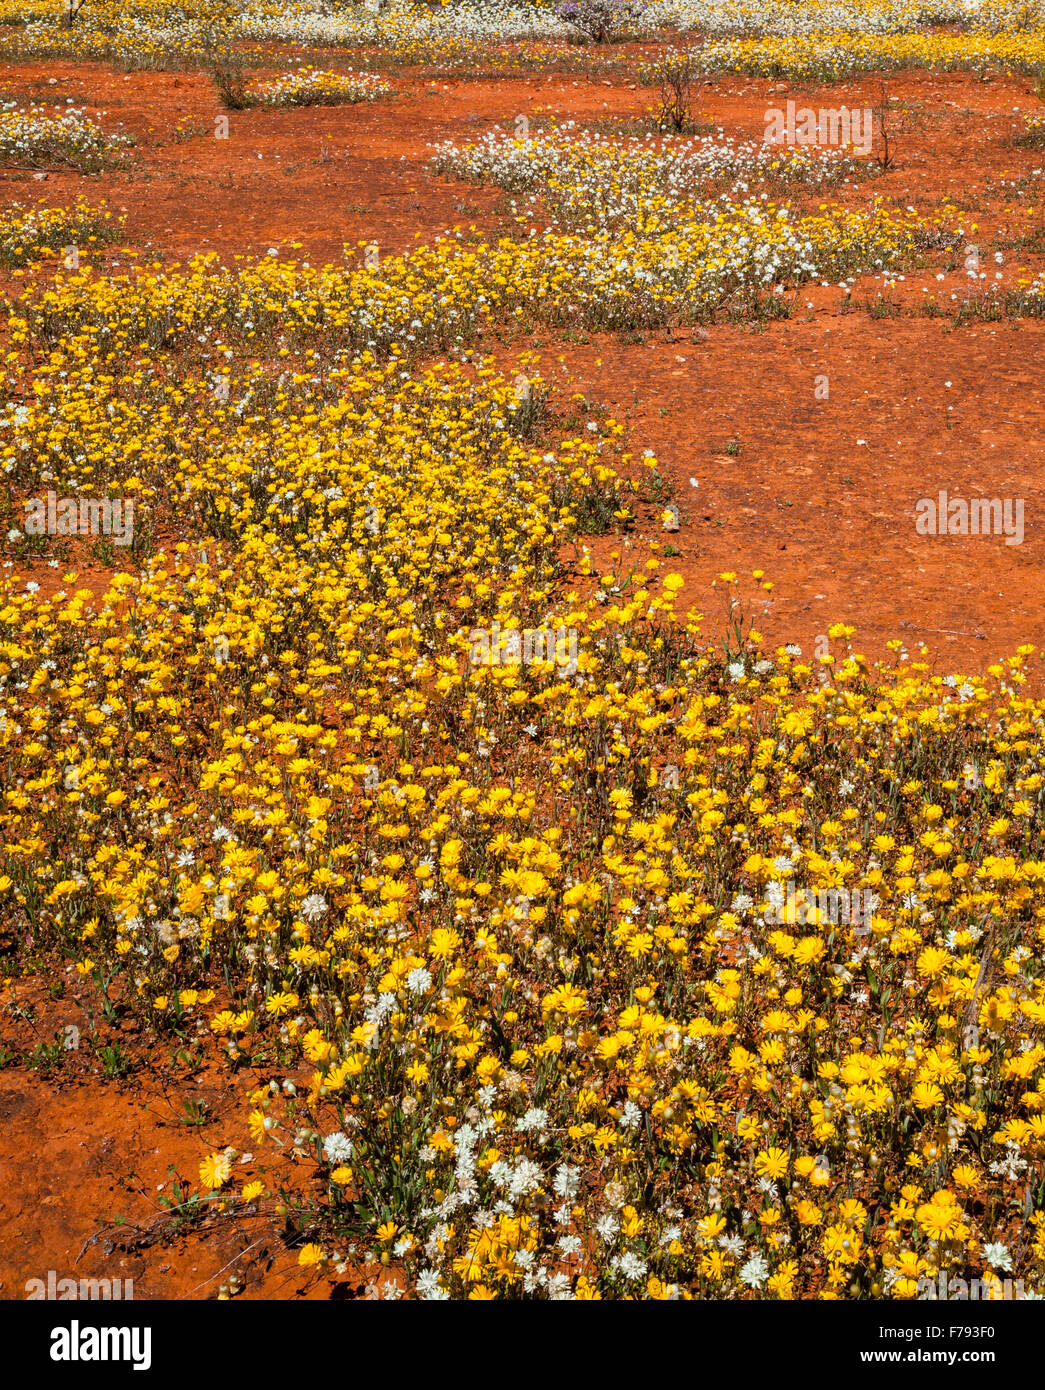 Australia, Western Australia, Mid West, Murchison District, rich display of Podolepis daisies spring wildflowers - Stock Image